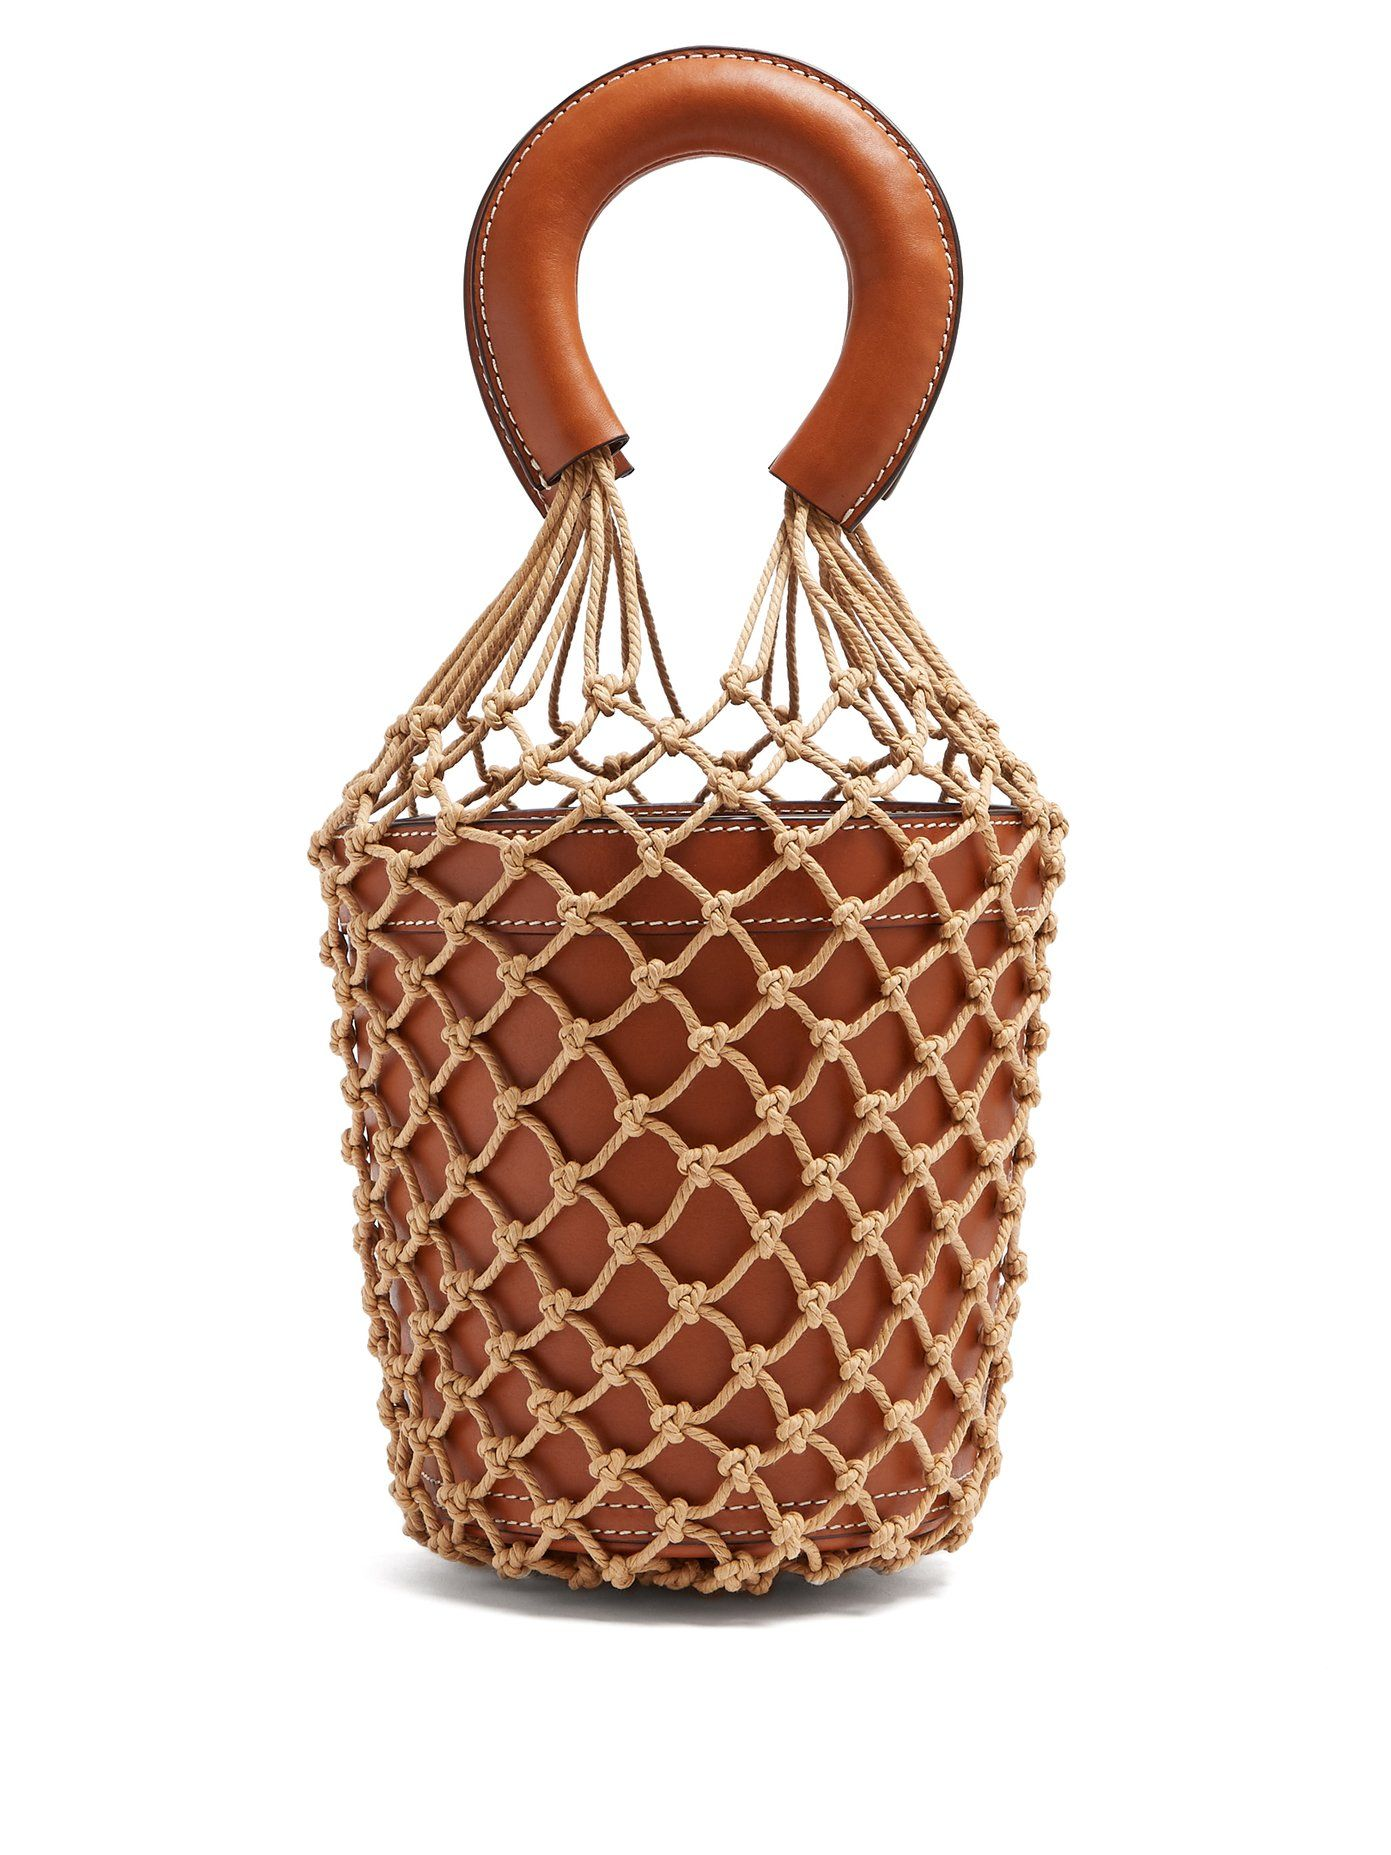 89db3a45d Click here to buy Staud Moreau macrame and leather bucket bag at  MATCHESFASHION.COM